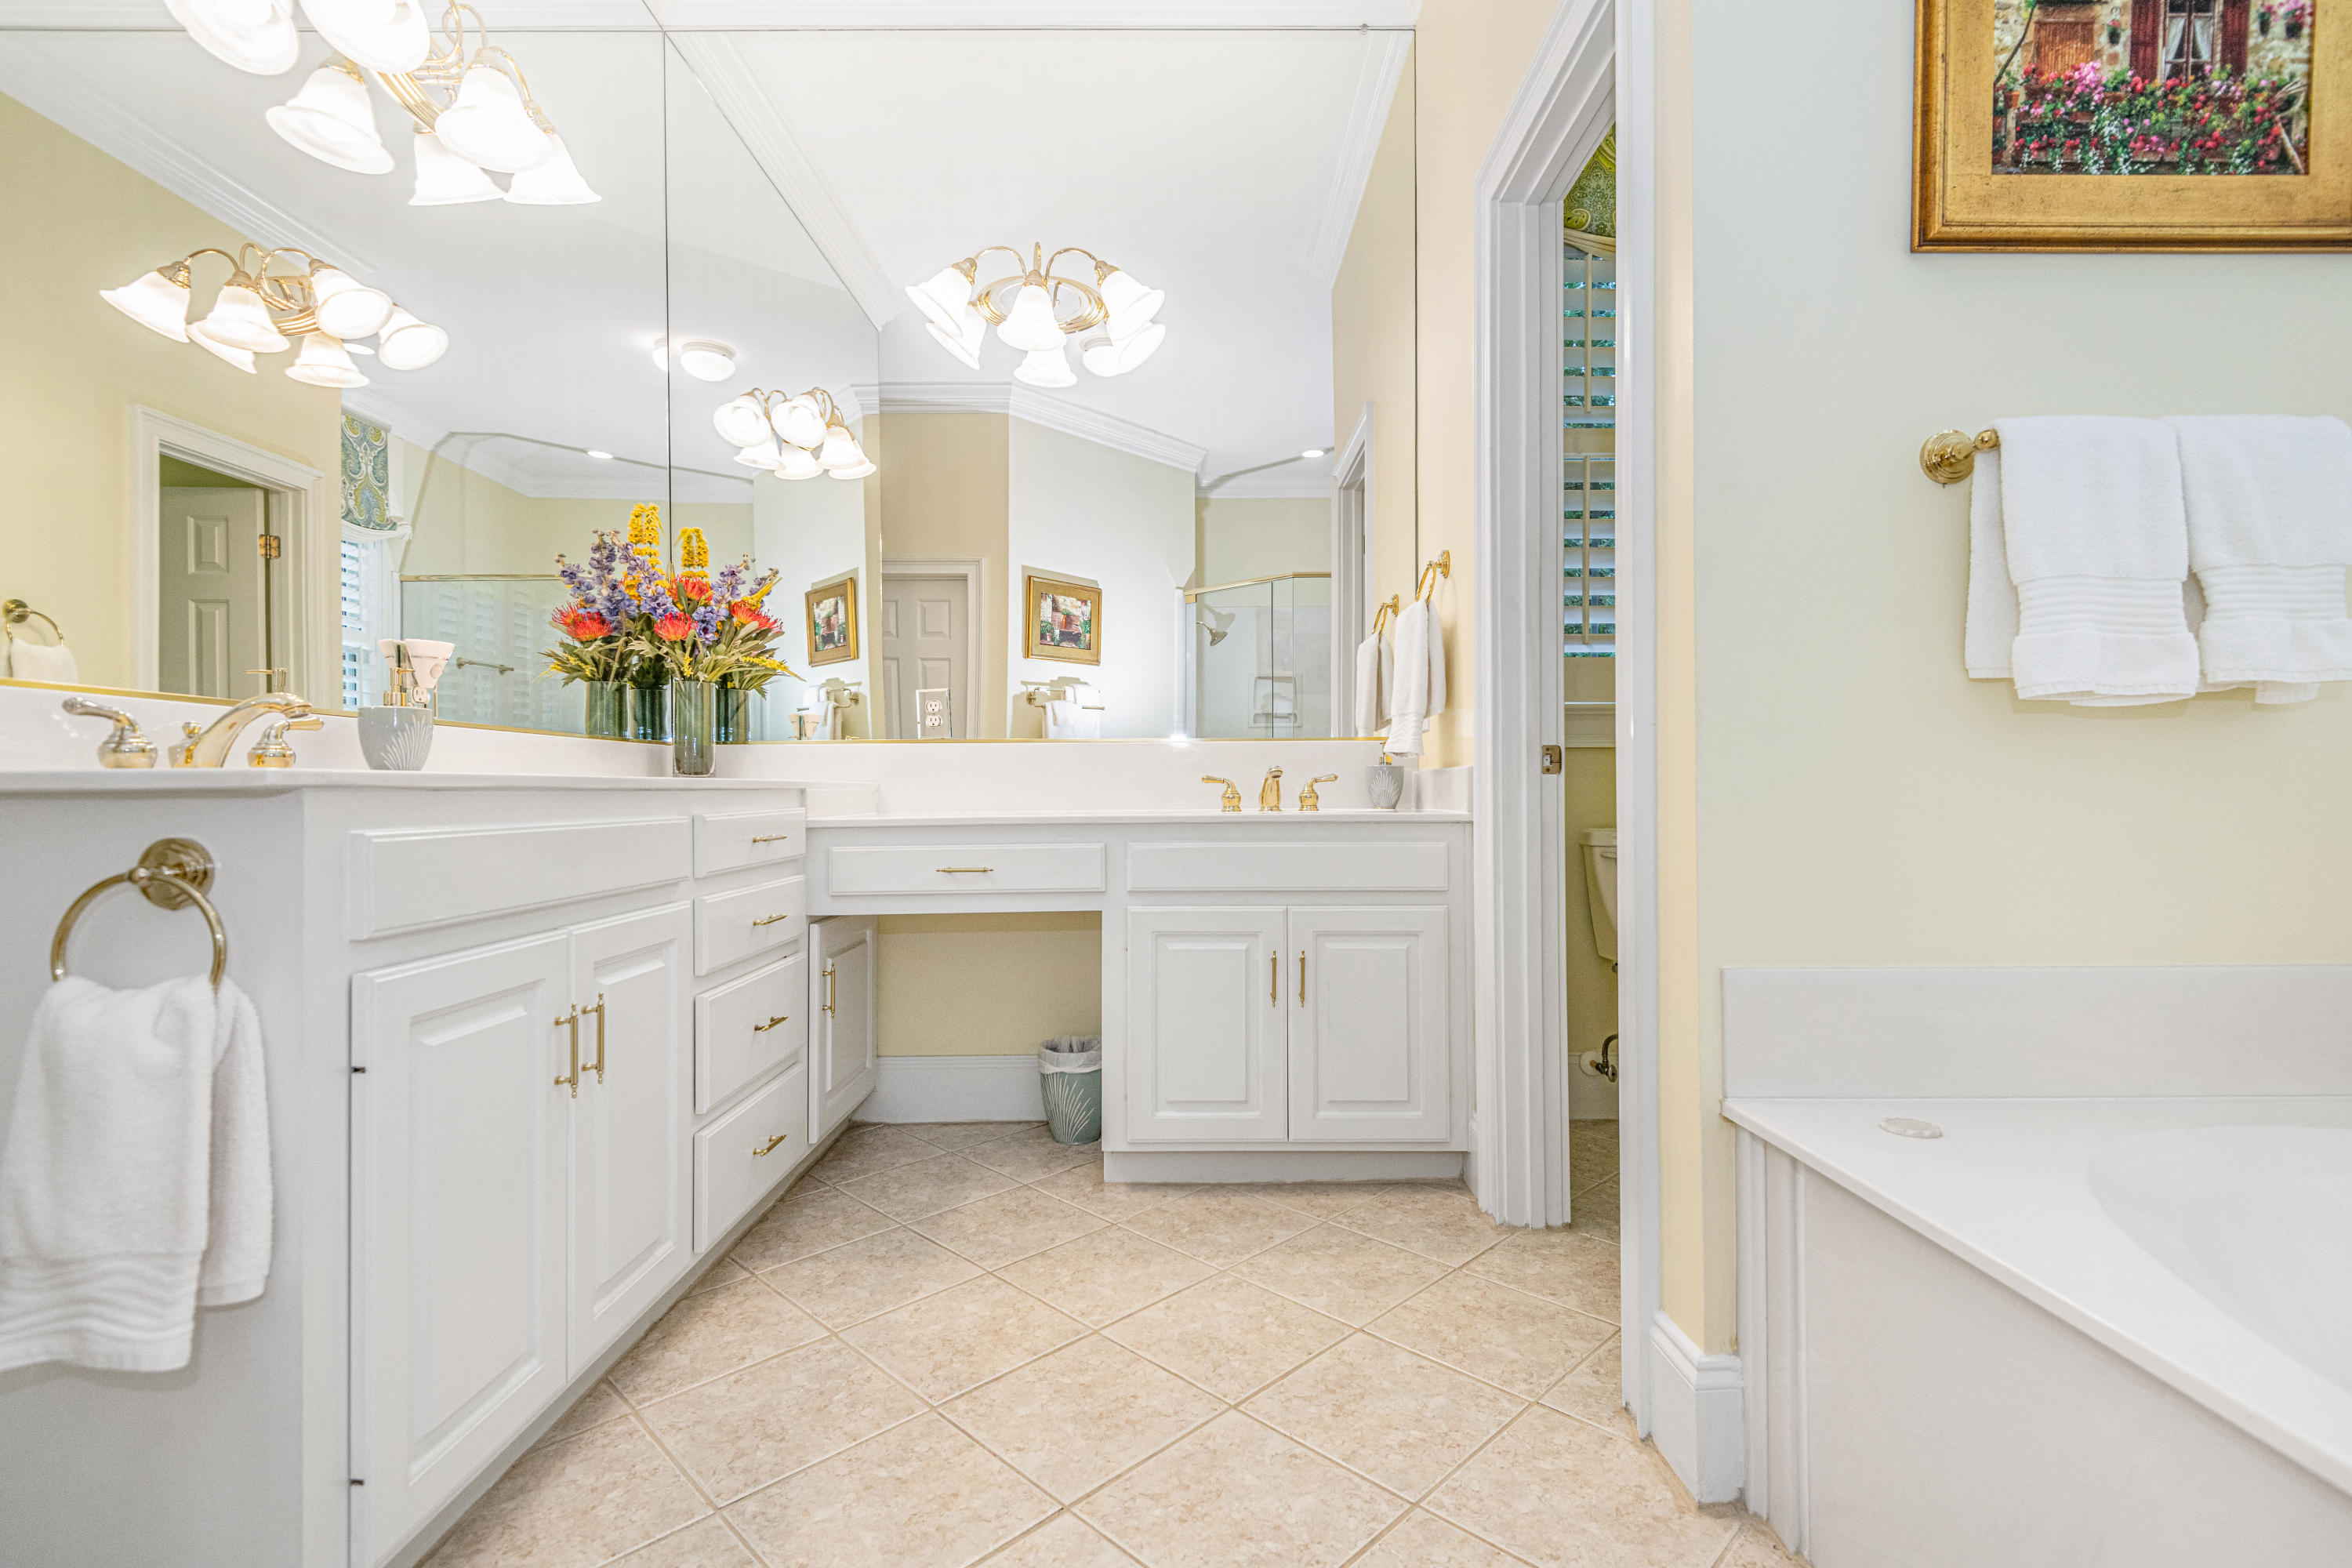 Dunes West Homes For Sale - 1837 Shell Ring, Mount Pleasant, SC - 9